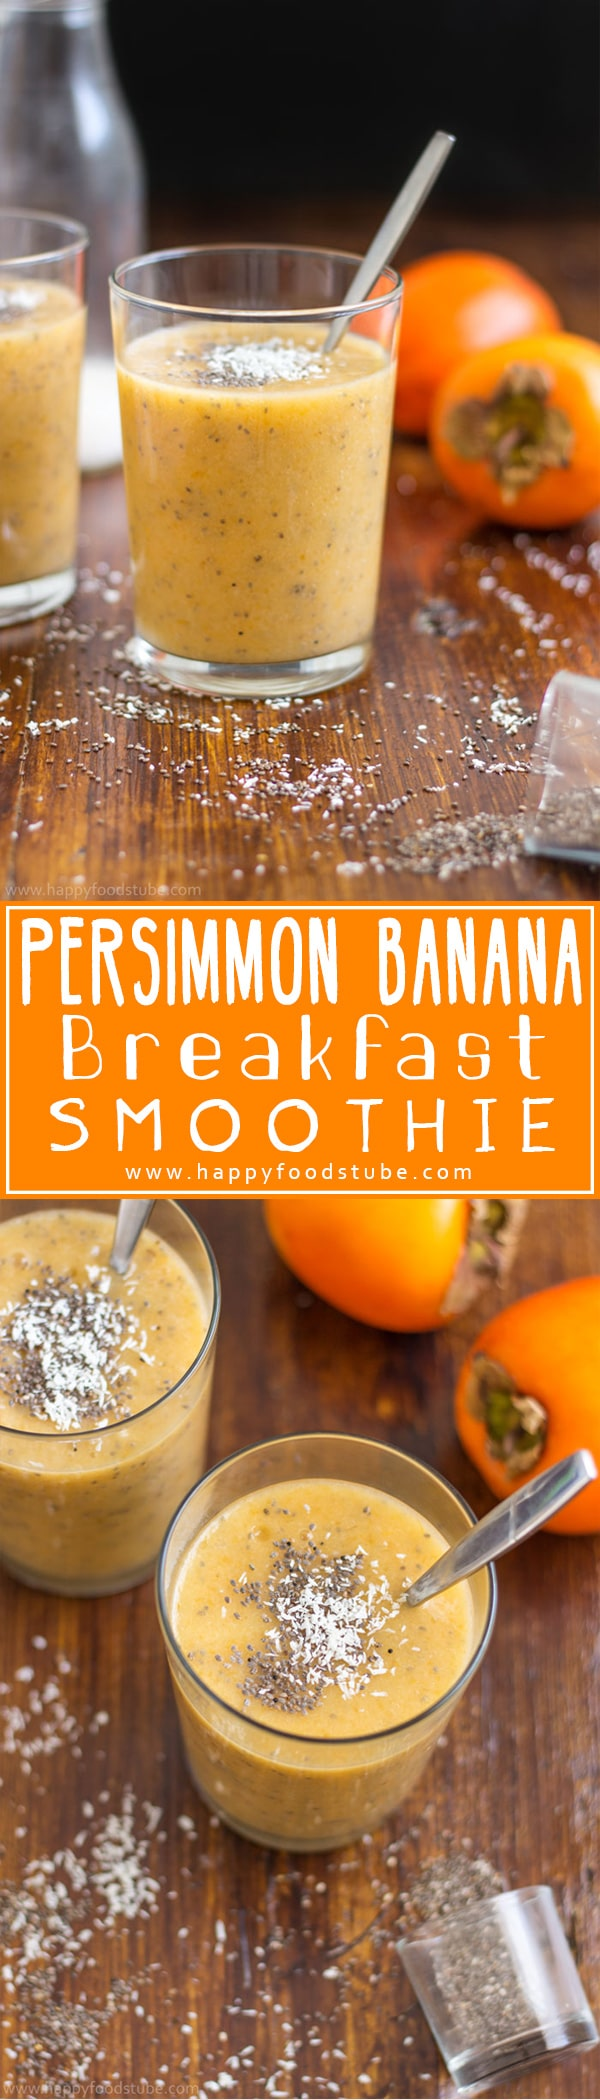 Start your day with this dairy free persimmon banana breakfast smoothie. It will boost your energy and help you stay healthy. Healthy recipe to start your day